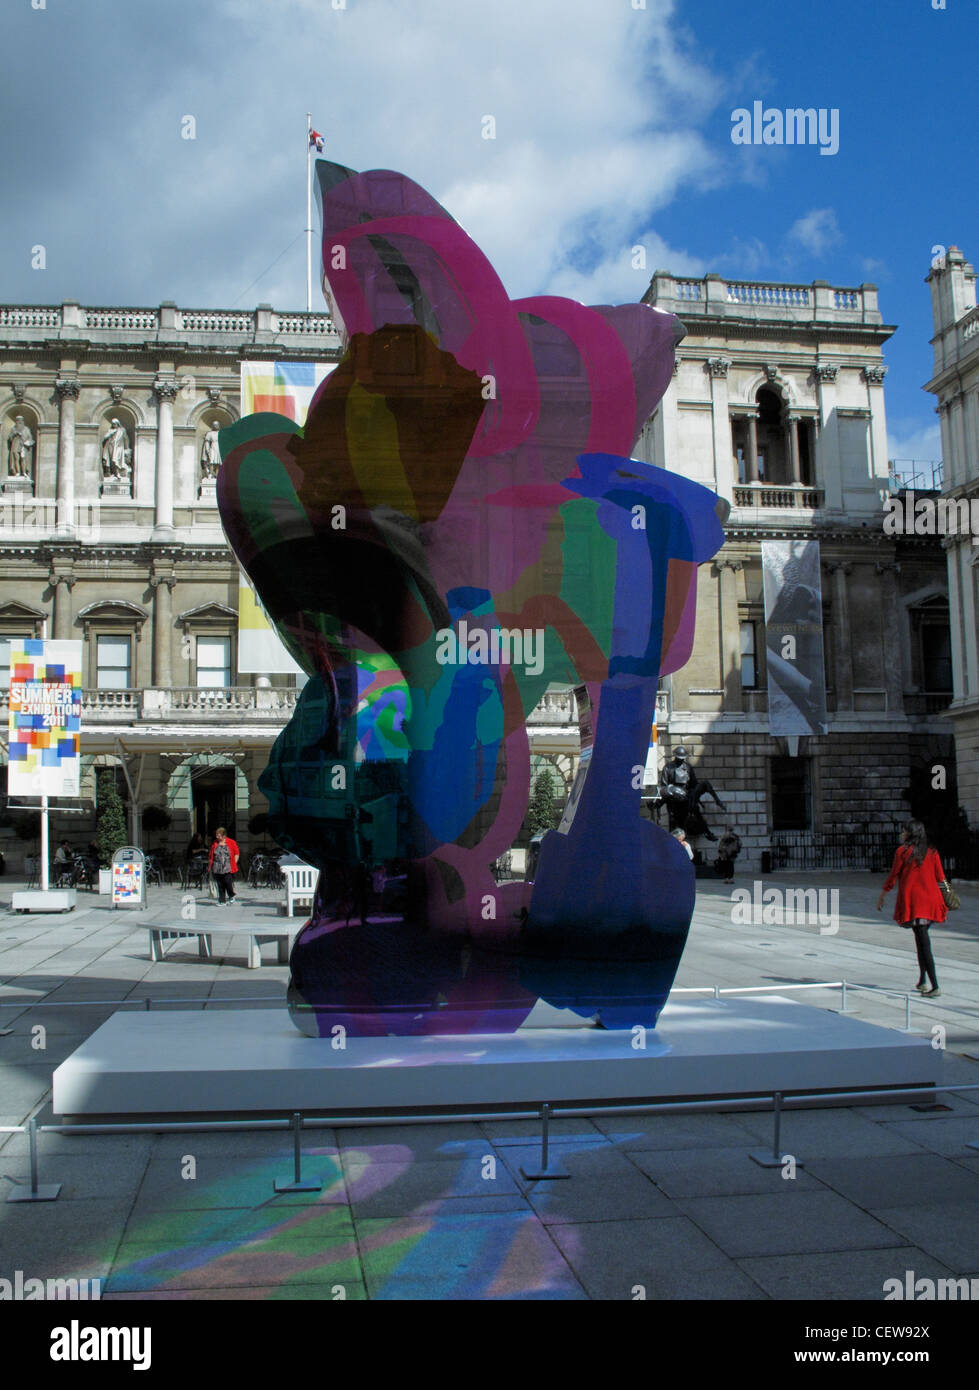 Coloring book by jeff koons - Jeff Koons Coloring Book Sculpture Summer 2011 Royal Academy Of Arts Piccadilly London England Uk